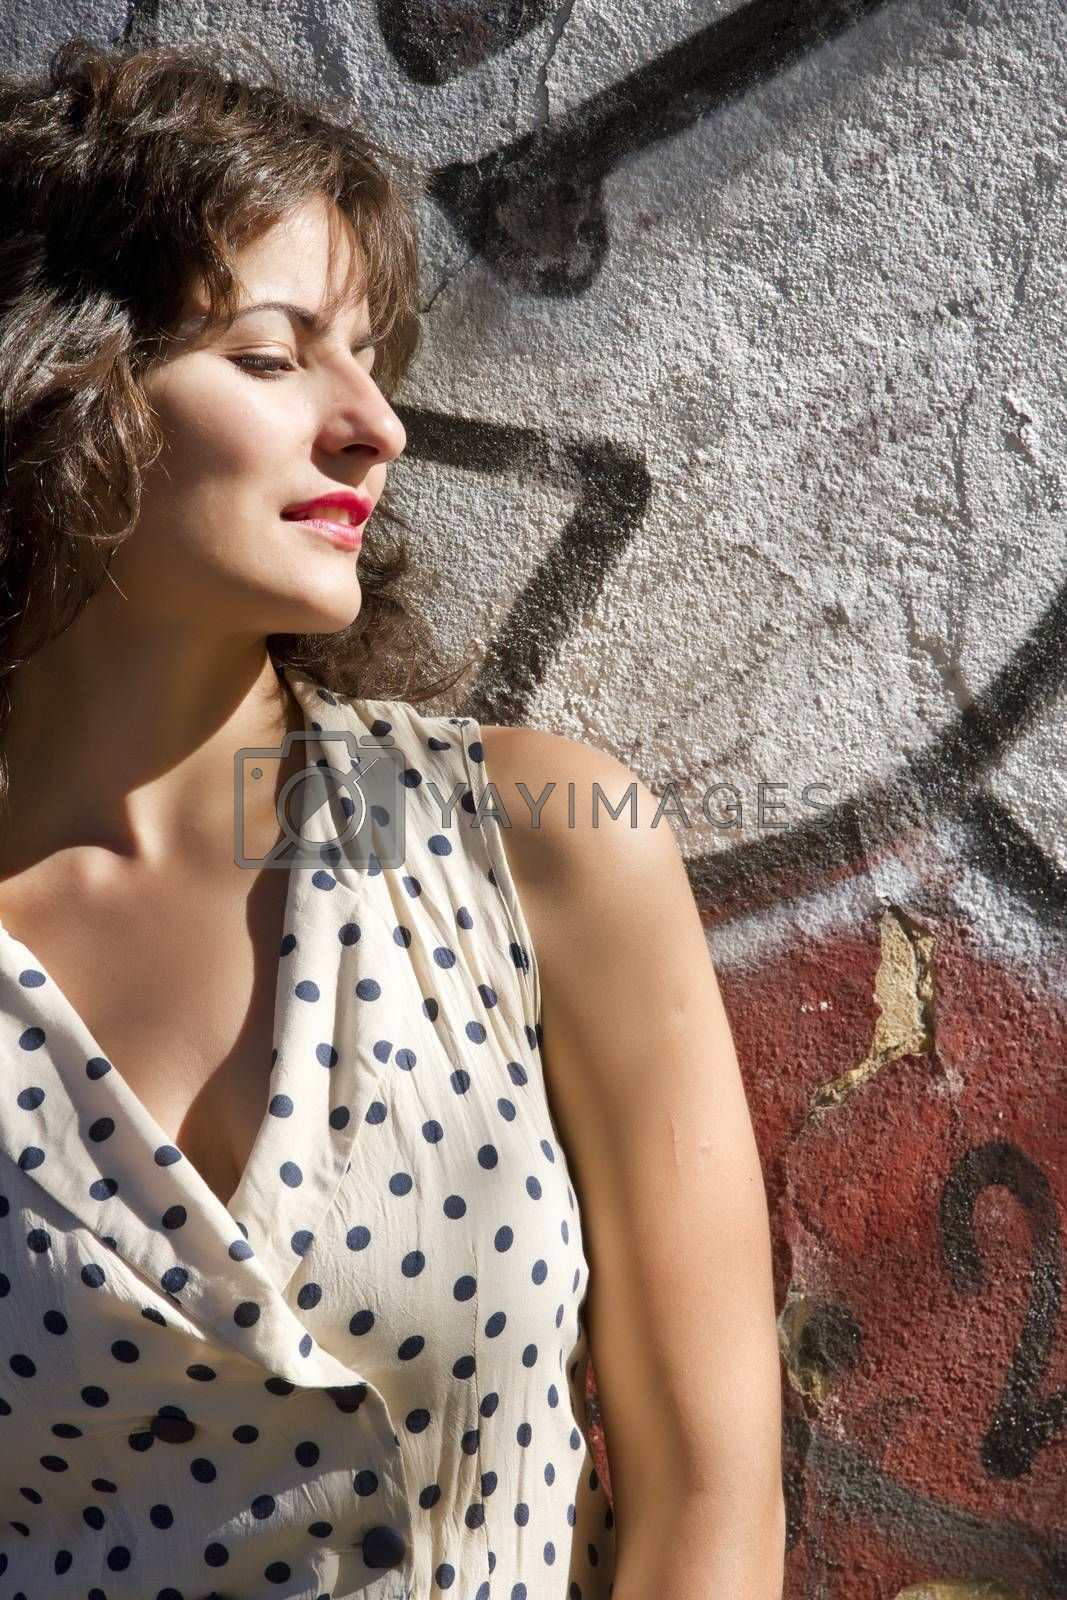 A vintage style dressed girl leaning at a graffiti wall and enjoying the sunlight.